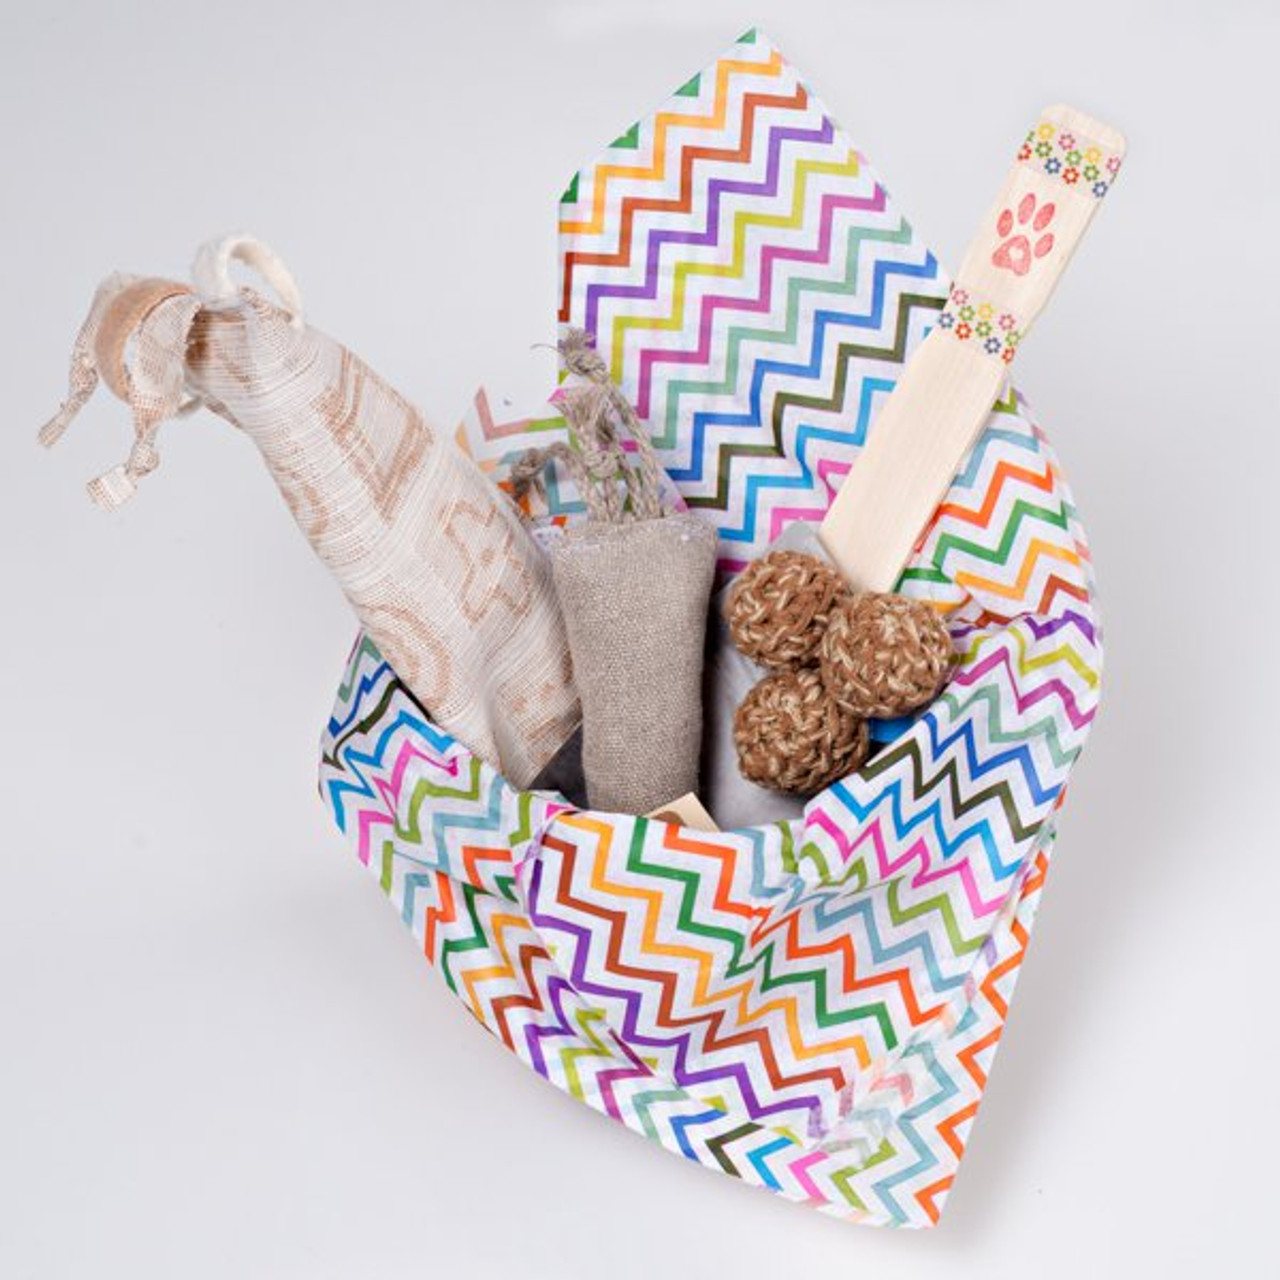 Gift Basket For Cats Filled With Organic Natural Cat Toys Made In The USA